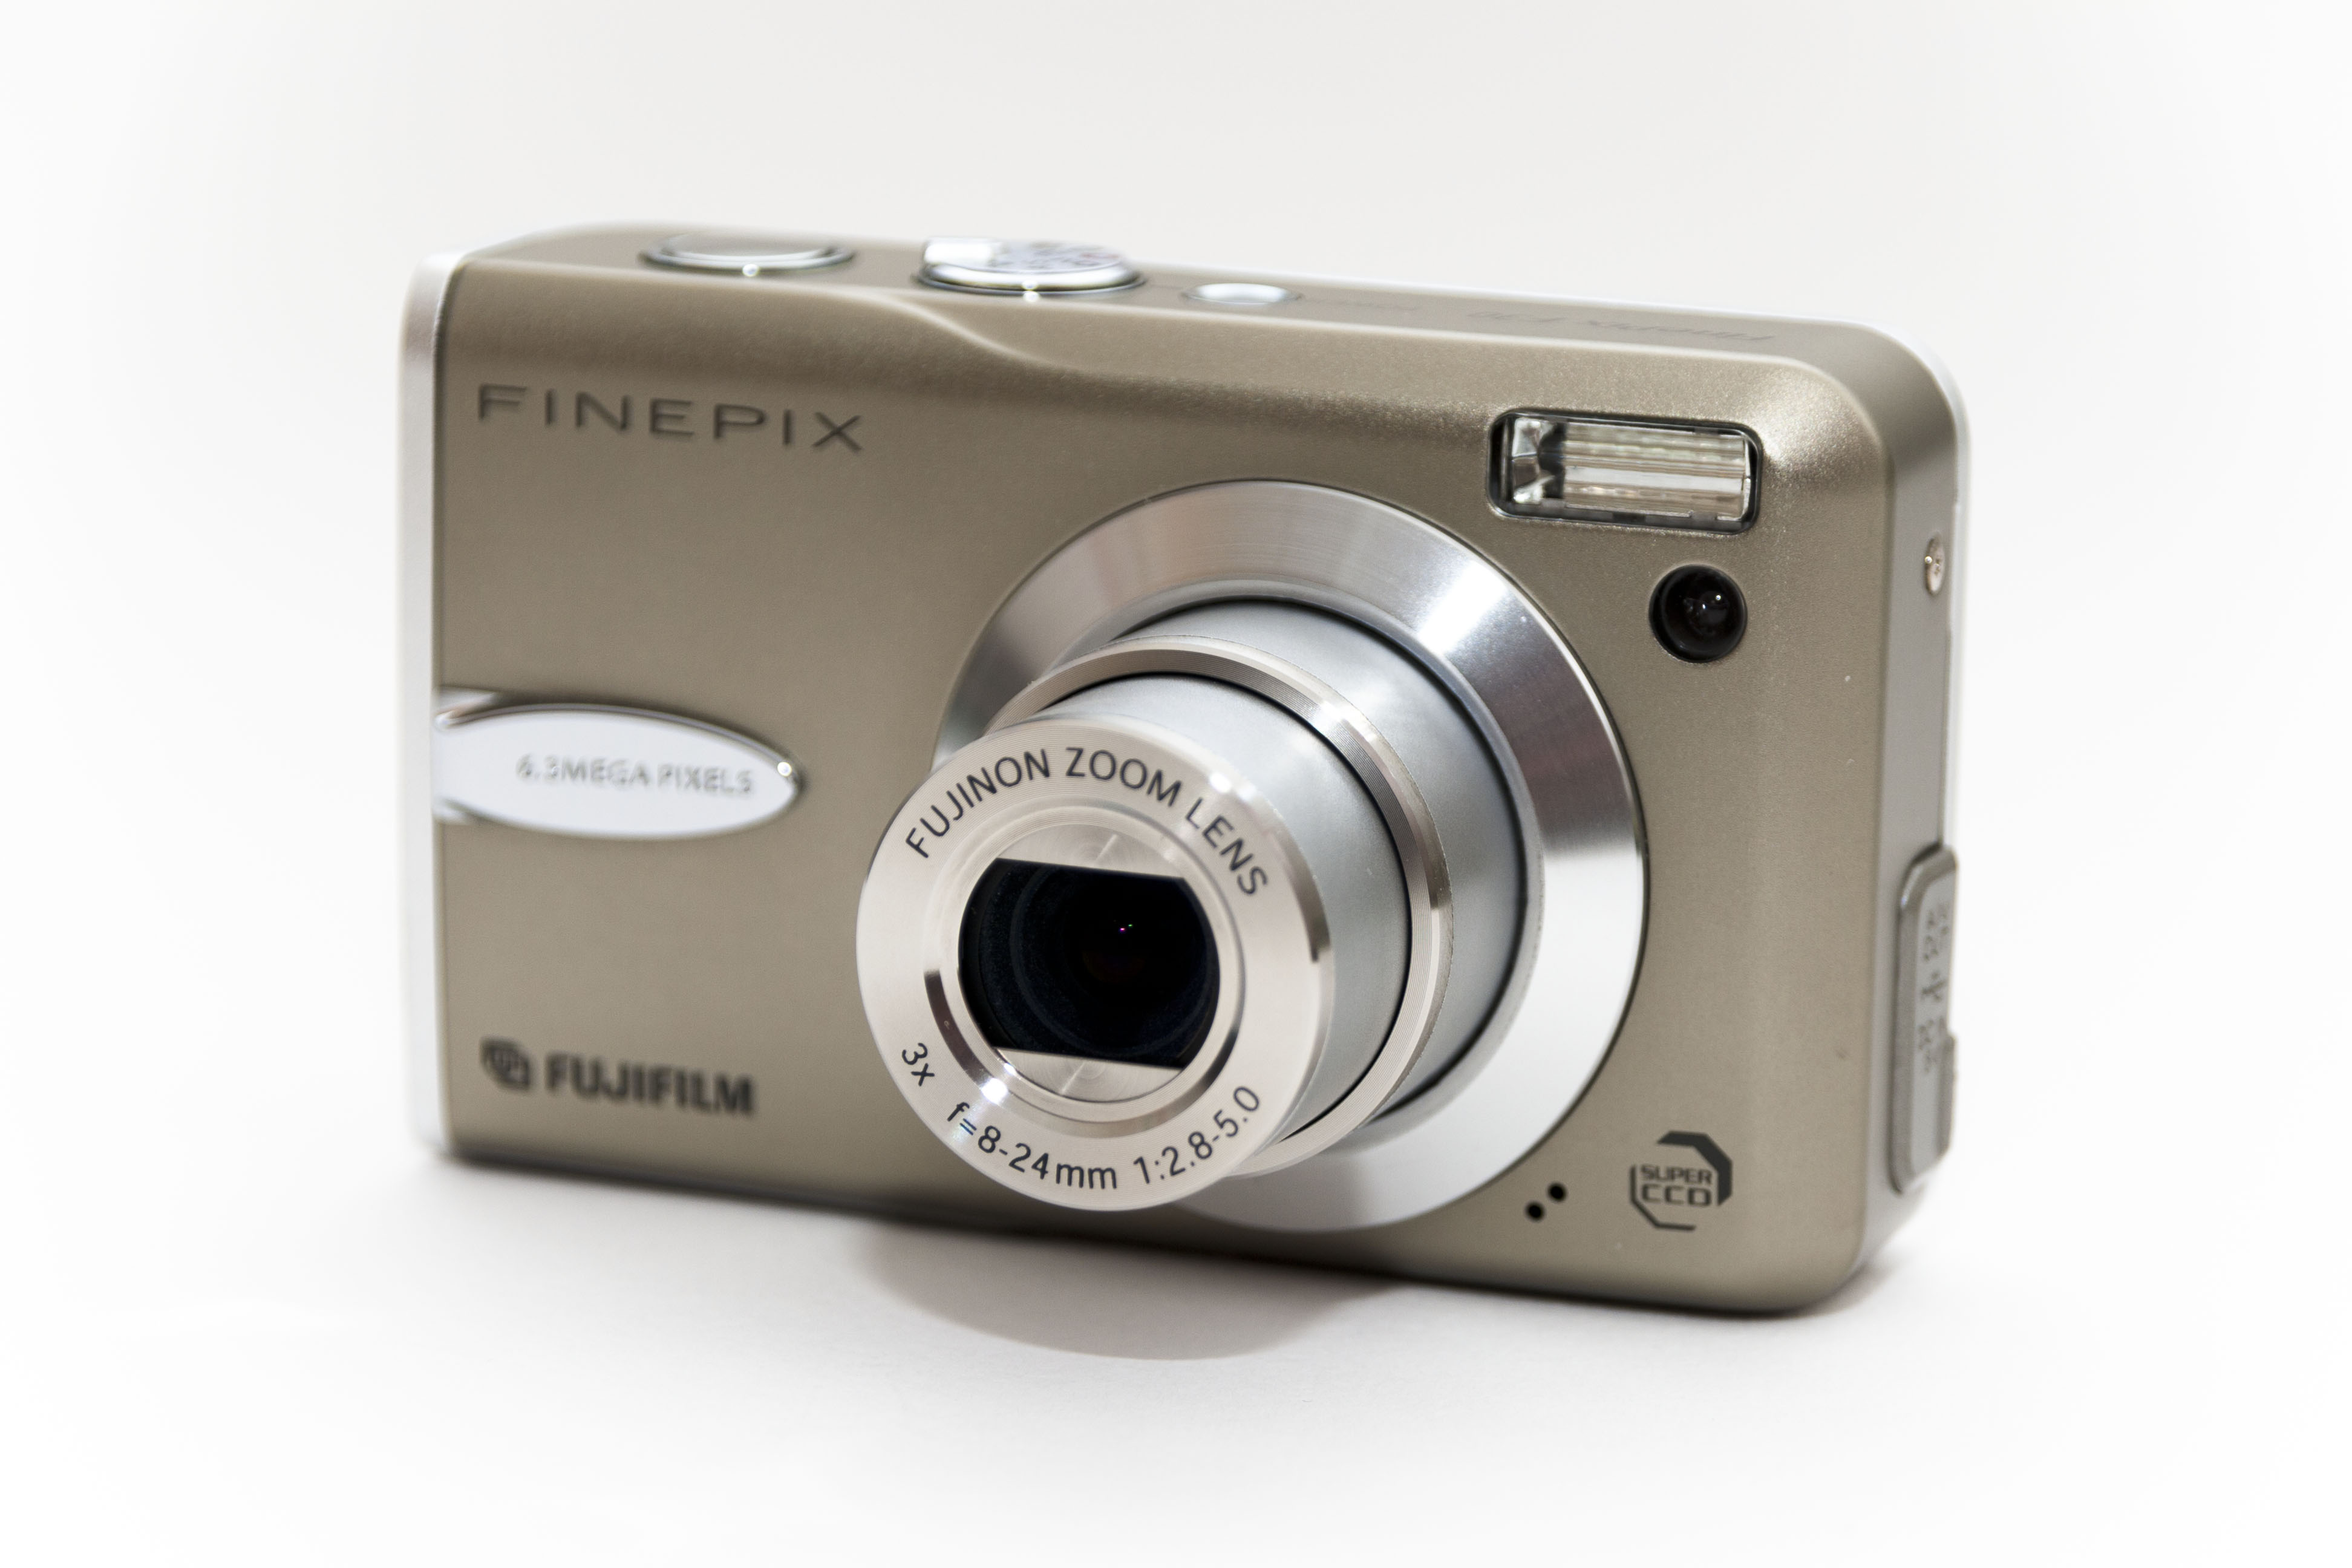 FINEPIX F30 DRIVERS FOR WINDOWS 10